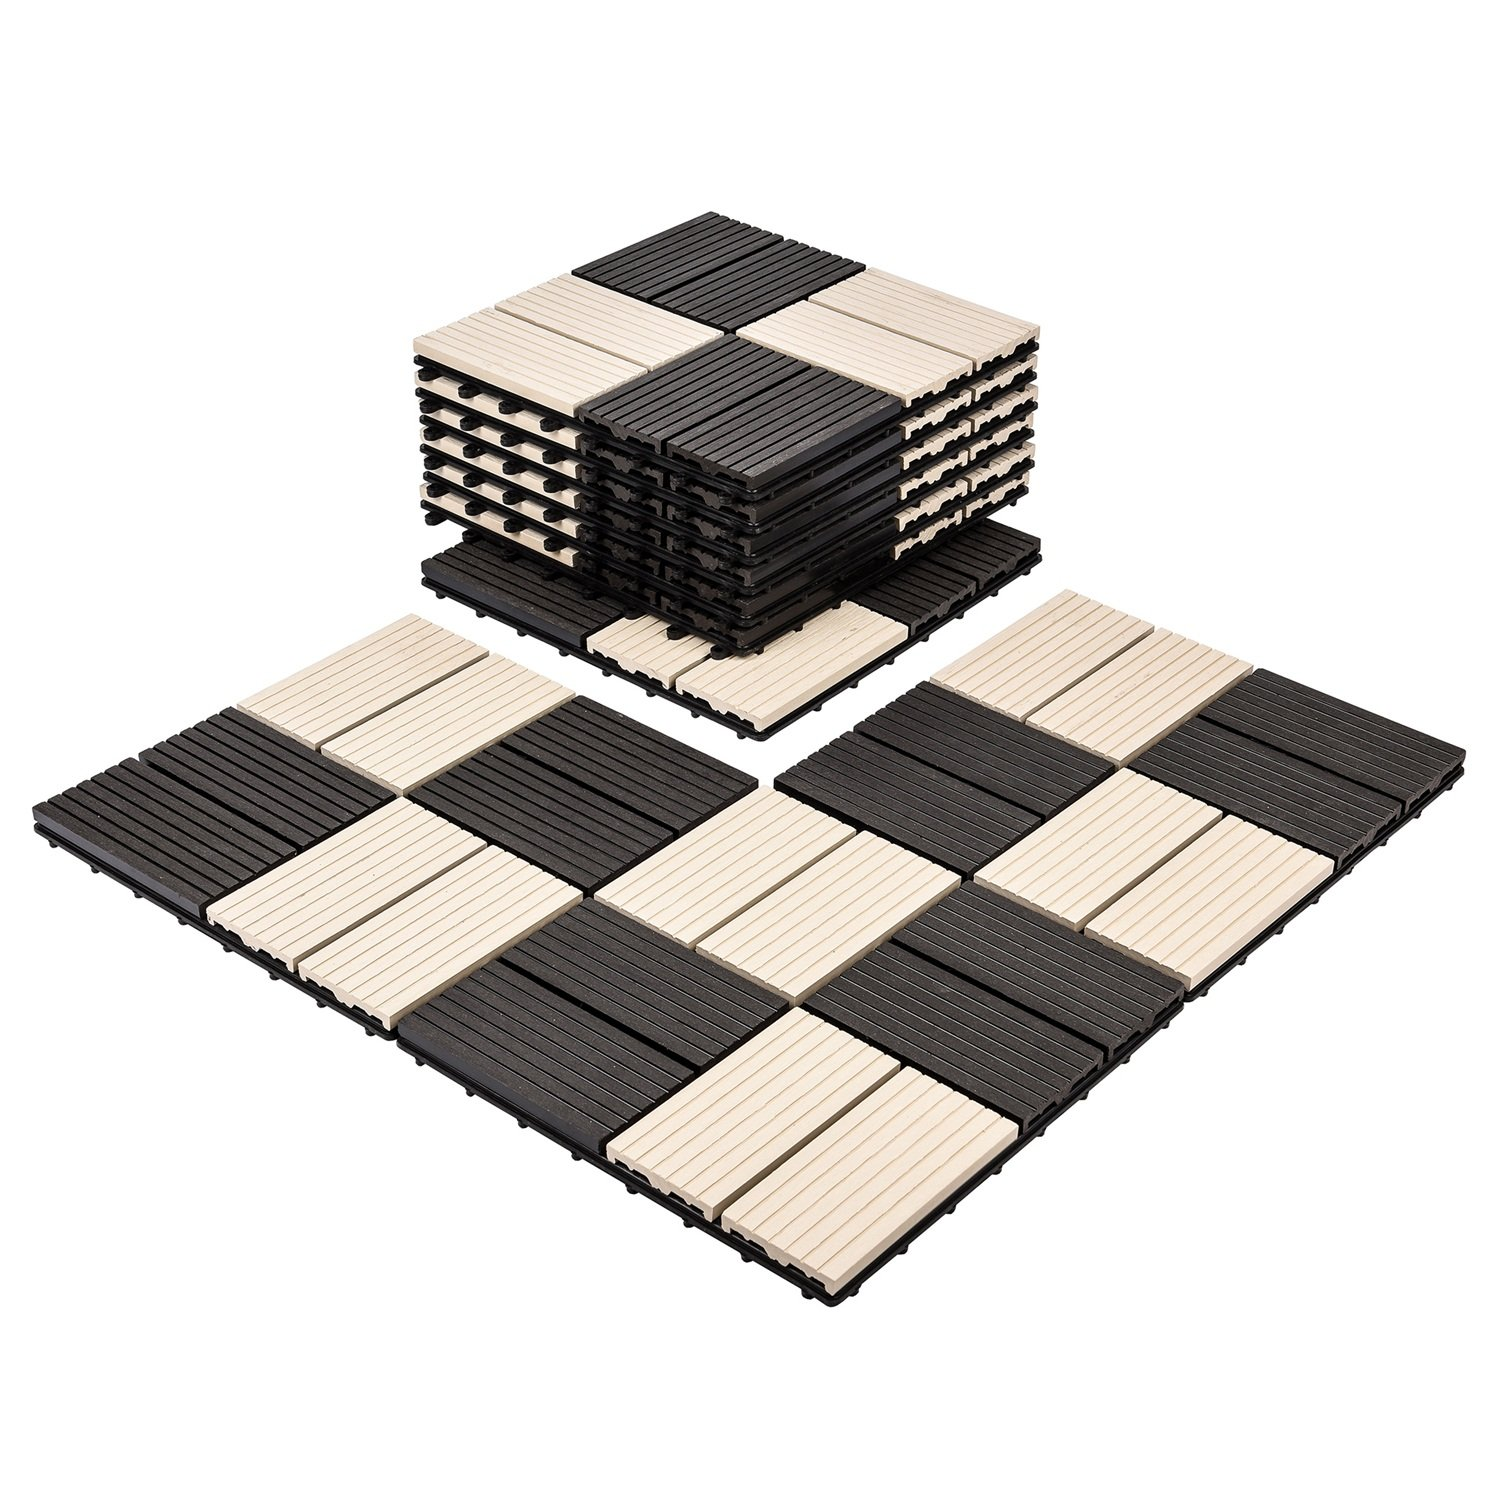 Composites Decking Flooring Solid Wood - Plastics Interlocking Flooring Deck Tile Black and White Windmill Pattern for Indoor and Outdoor (Set of 10)